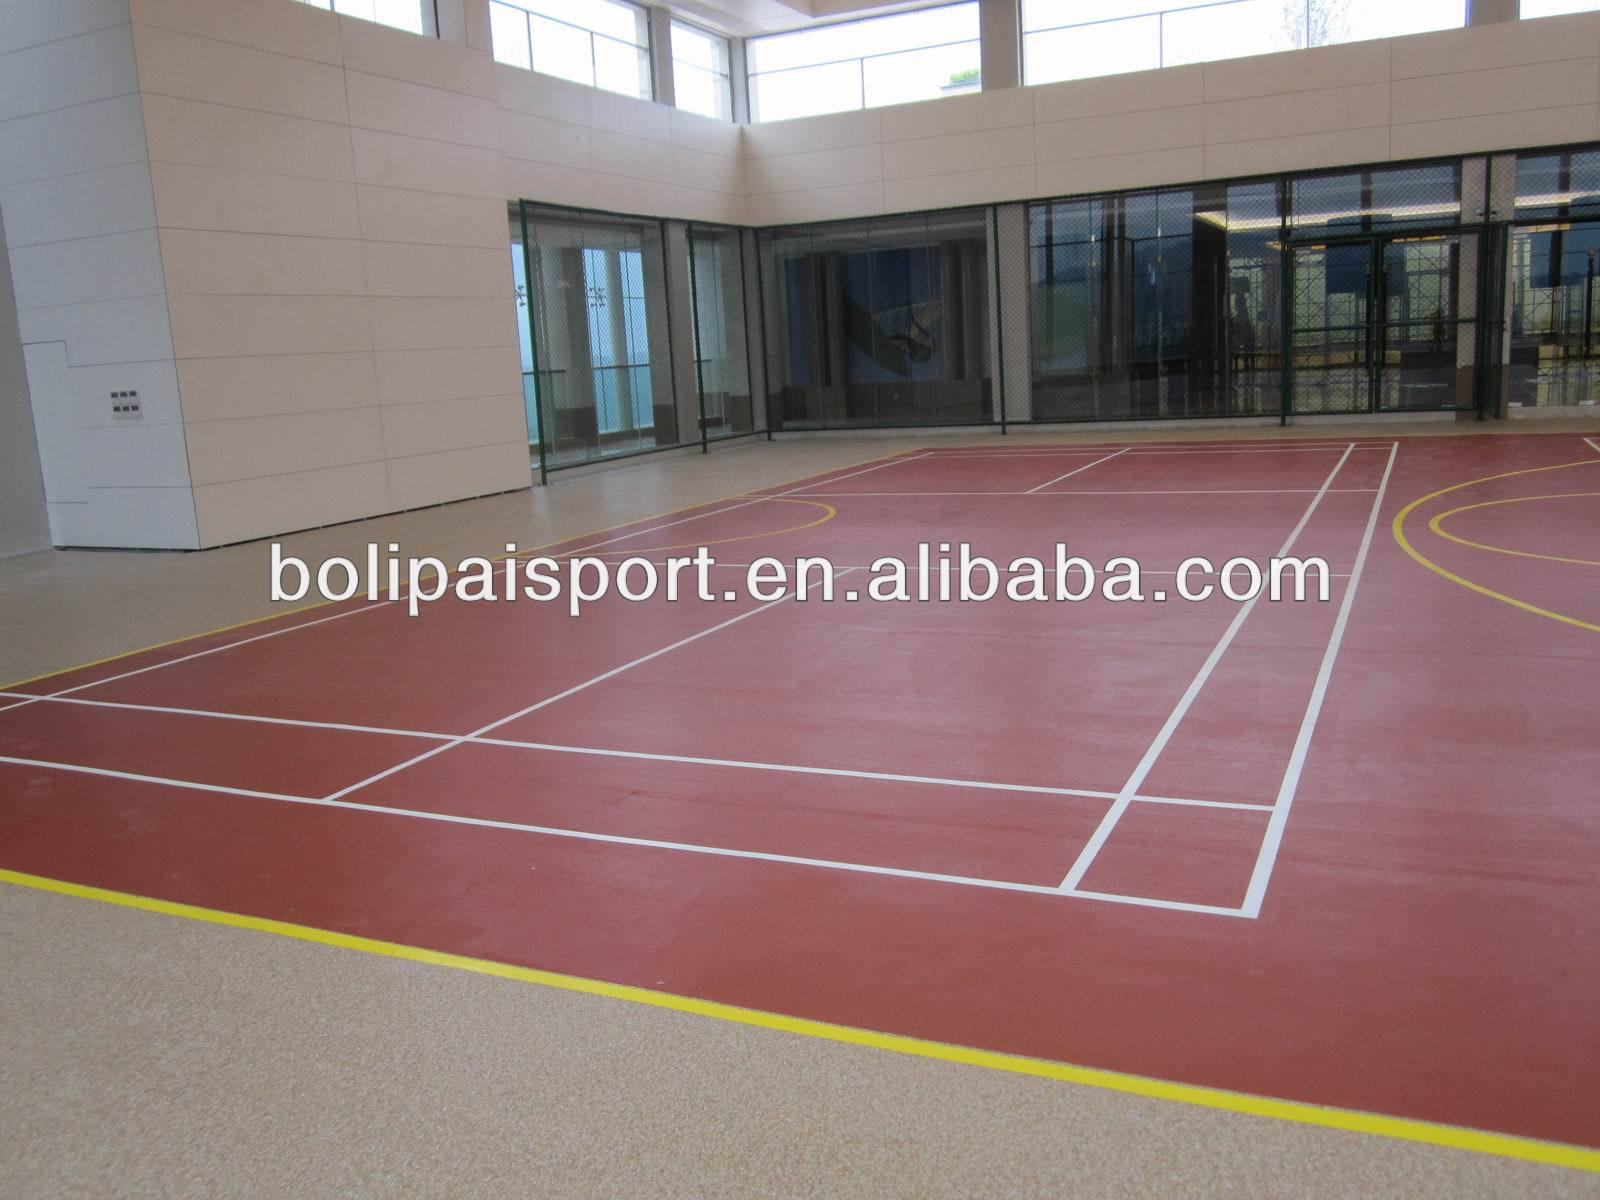 Outdoor Basketball Court Rubber Floor Tile, Outdoor Basketball Court Rubber  Floor Tile Suppliers And Manufacturers At Alibaba.com